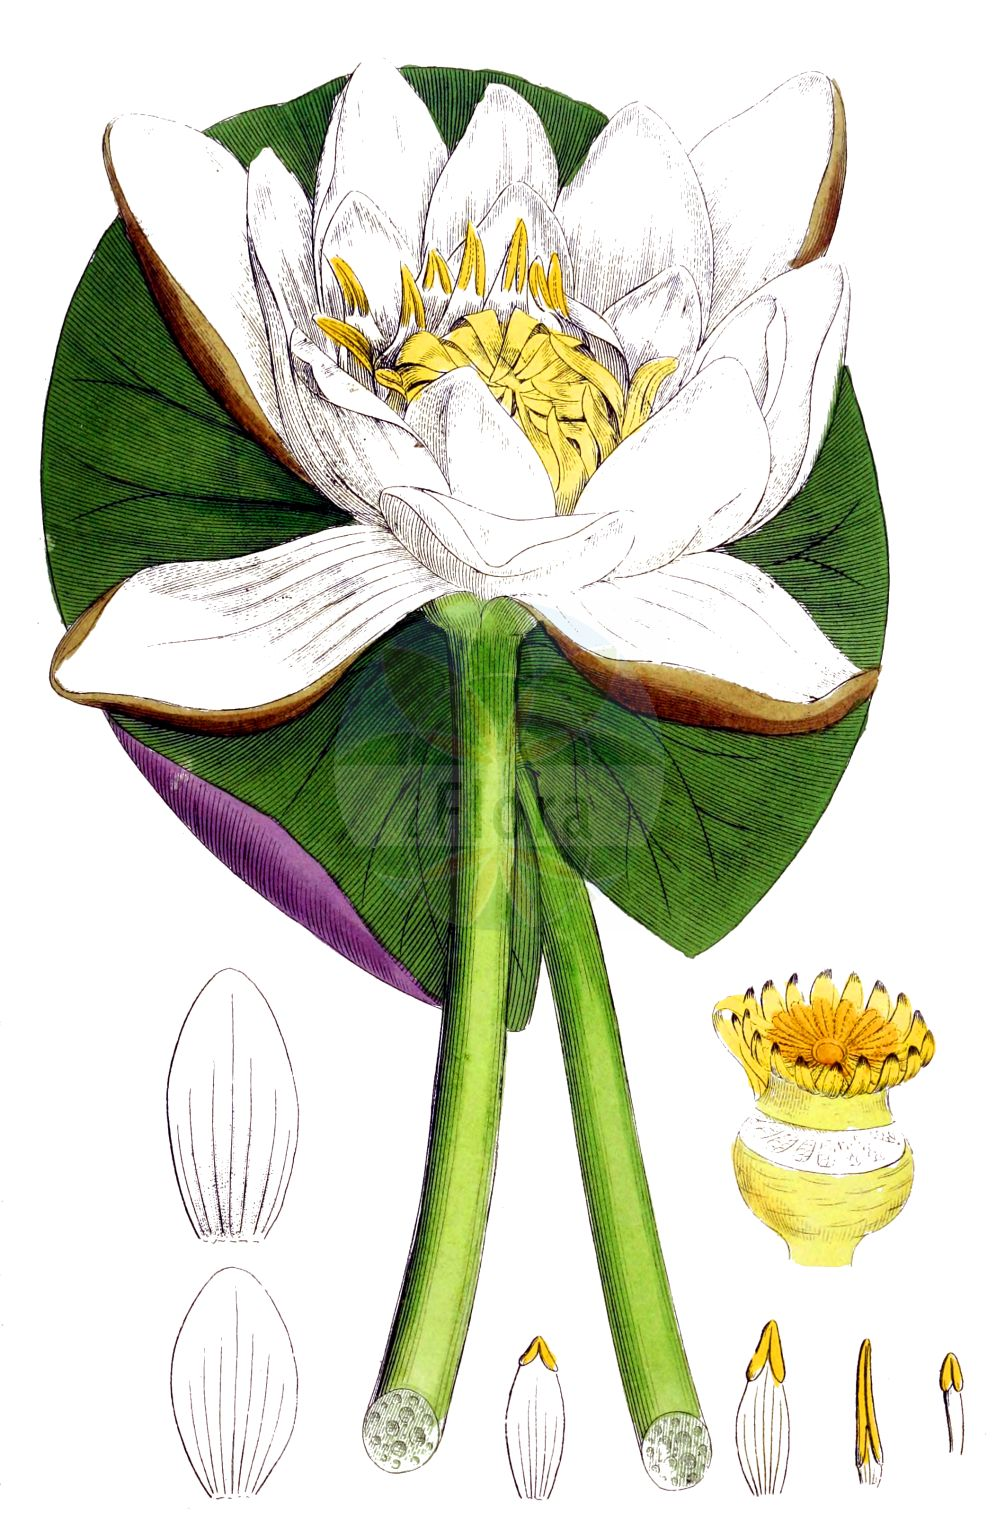 Historische Abbildung von Nymphaea alba (Weisse Seerose - White Water-lily). Das Bild zeigt Blatt, Bluete, Frucht und Same. ---- Historical Drawing of Nymphaea alba (Weisse Seerose - White Water-lily).The image is showing leaf, flower, fruit and seed.(Nymphaea alba,Weisse Seerose,White Water-lily,Castalia alba,Nymphaea alba,Nymphaea minoriflora,Nymphaea occidentalis,Weisse Seerose,White Water-lily,European White Waterlily,Nymphaea,Seerose,Water-lily,Nymphaeaceae,Seerosengewaechse,Water-lily family,Blatt,Bluete,Frucht,Same,leaf,flower,fruit,seed,Sowerby (1790-1813))